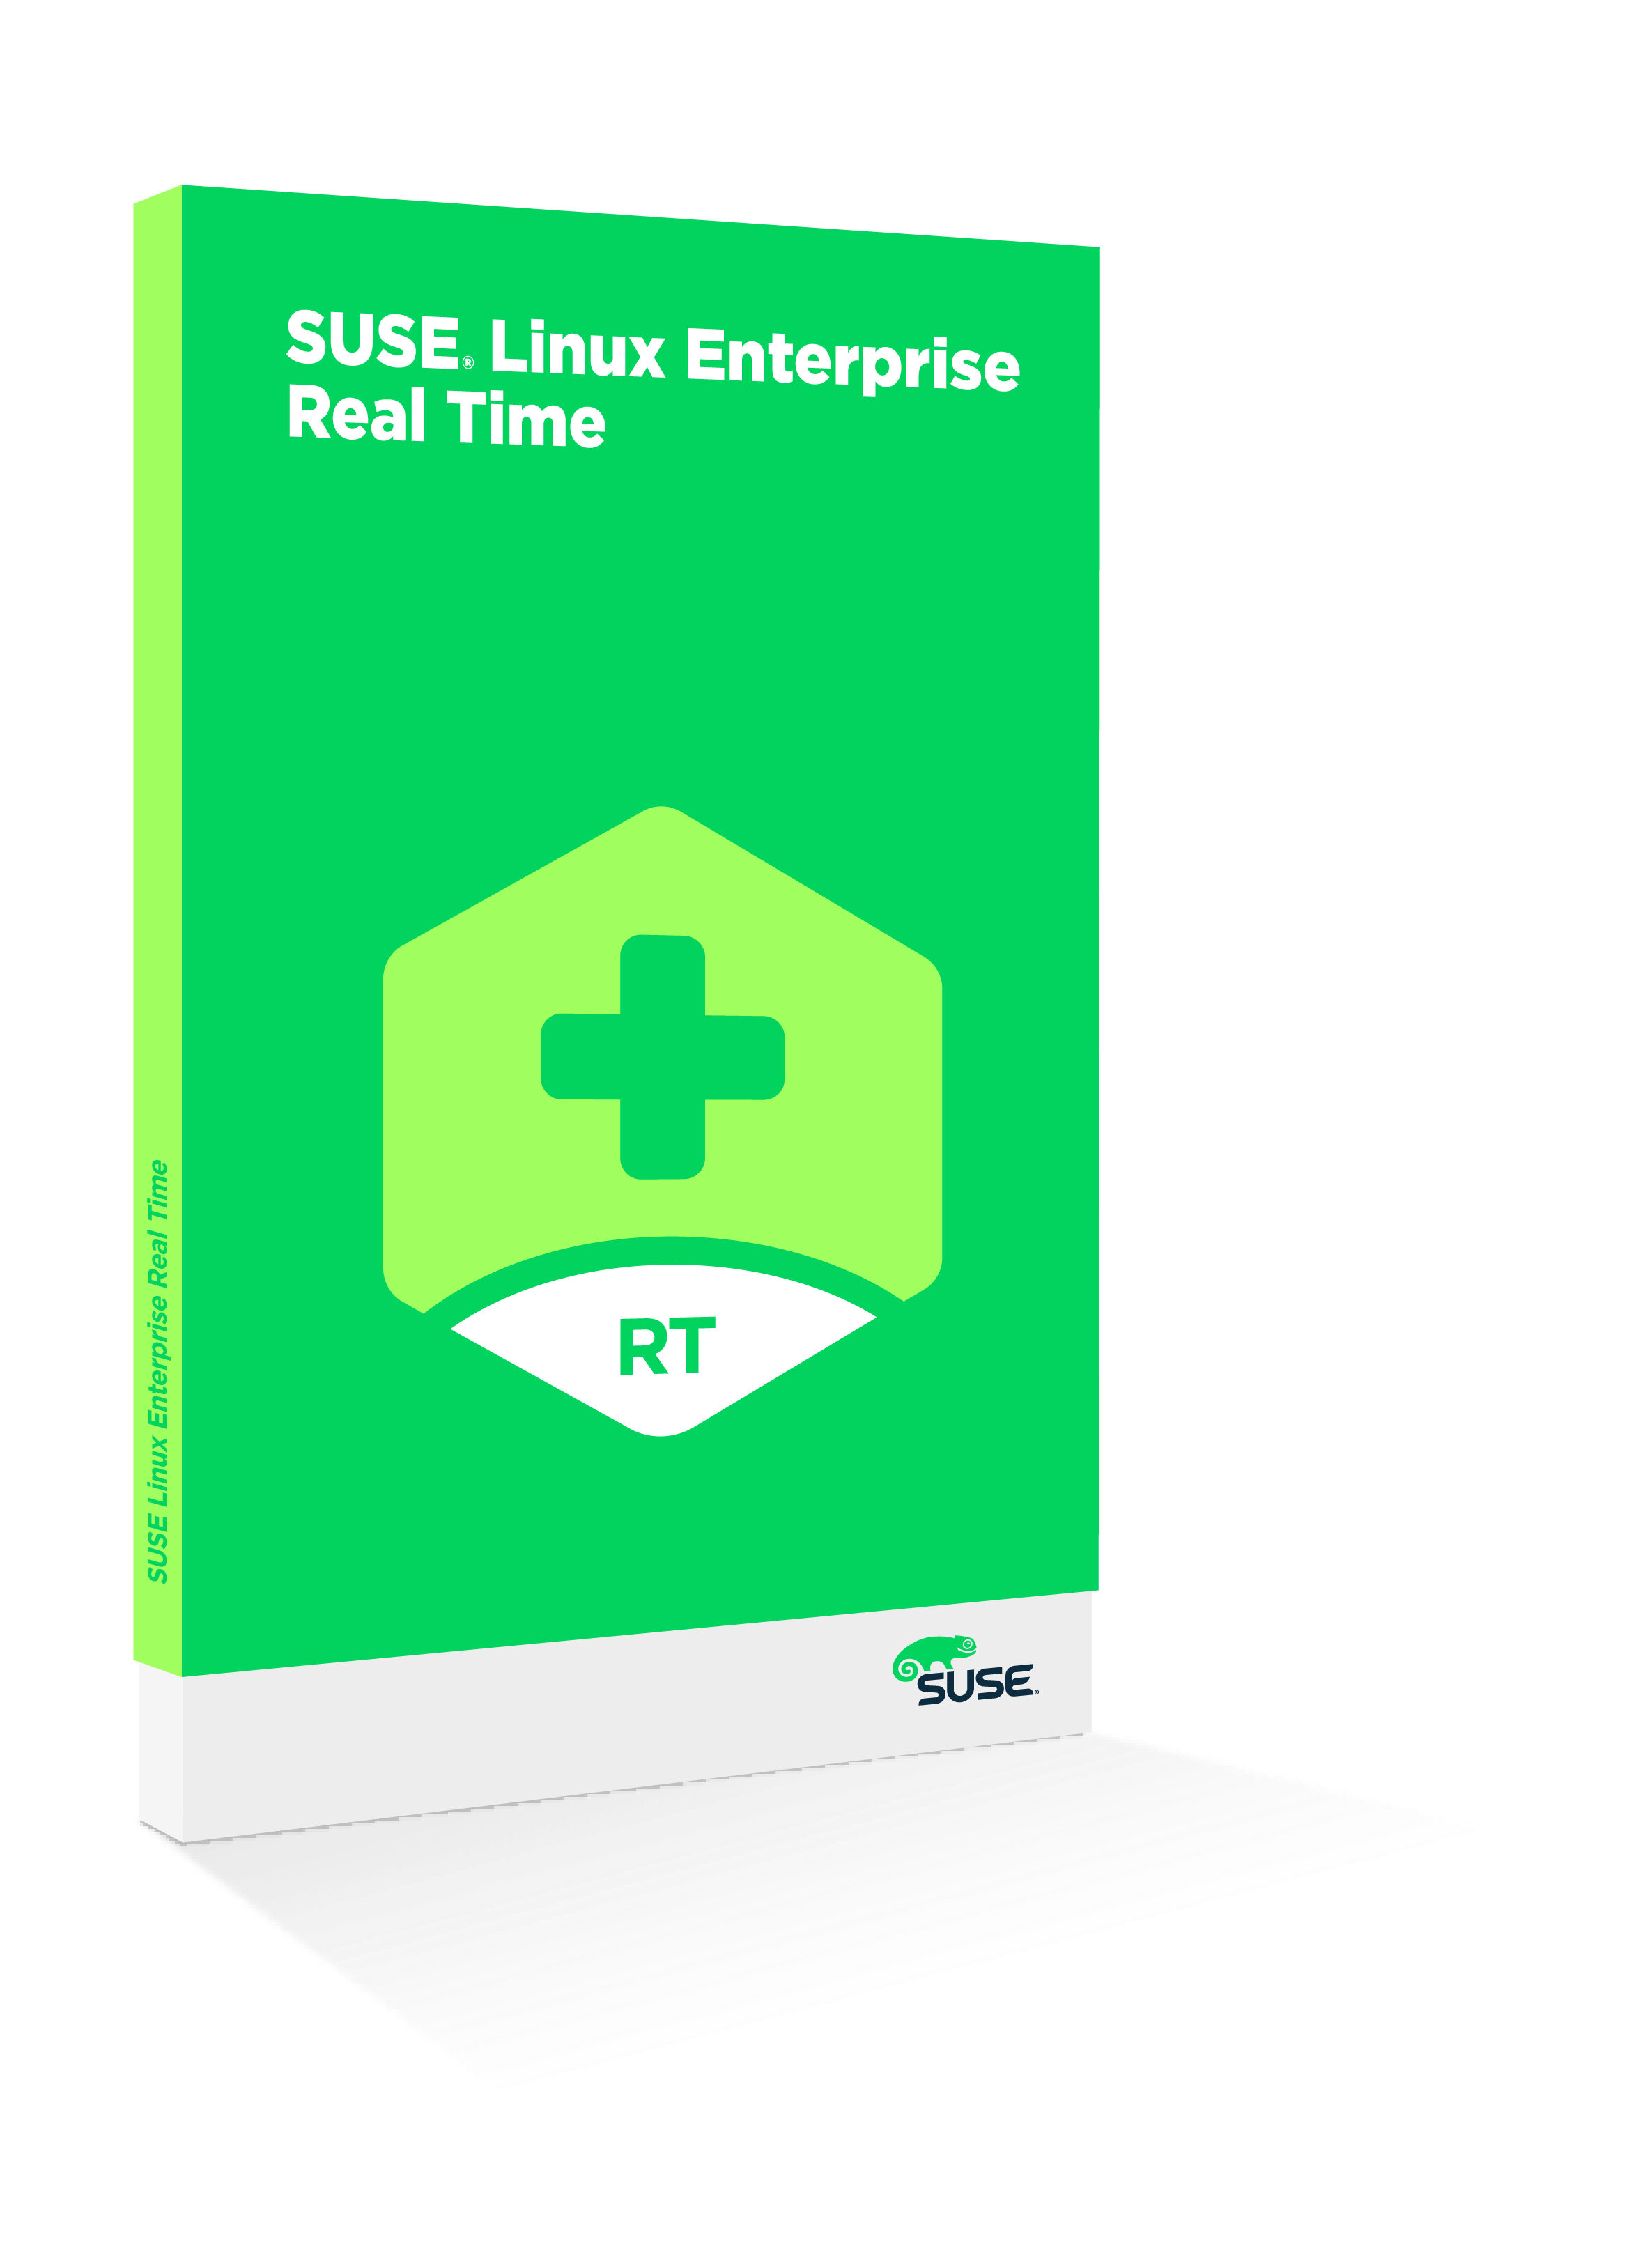 SUSE Real Time